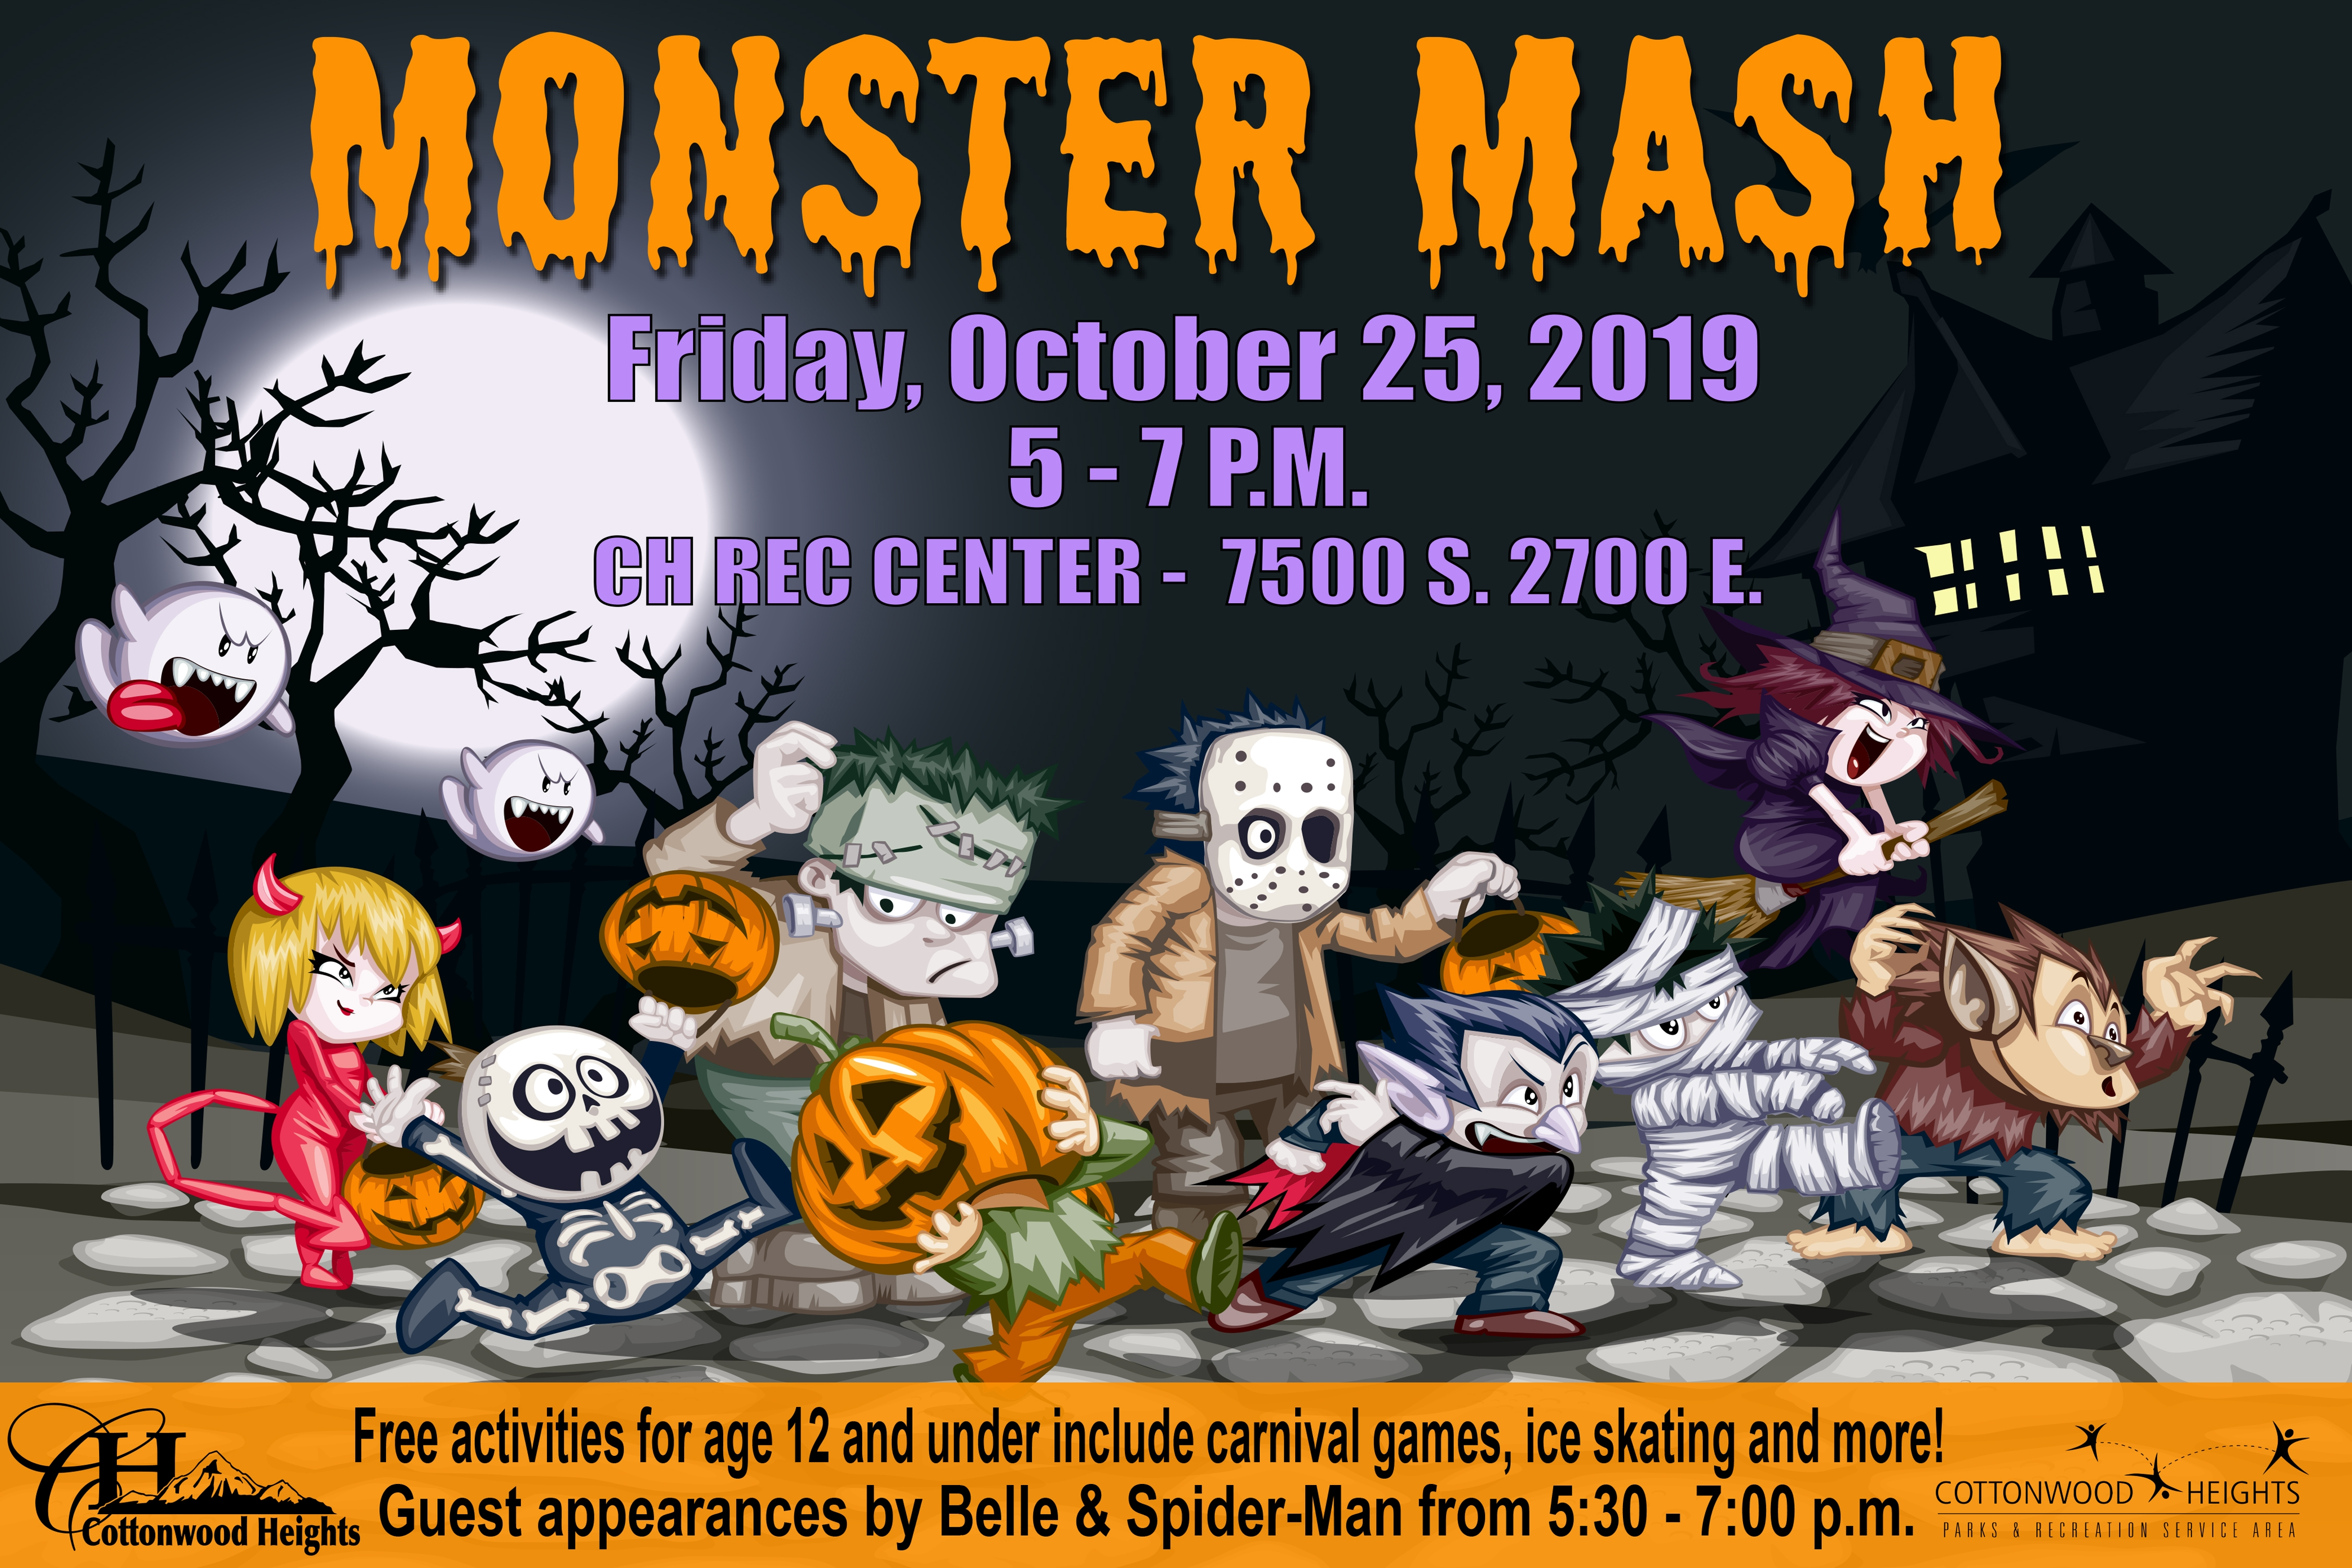 Monster Mash - Friday, October 25, 2019 From 5 - 7 P.M. Come And Meet Belle & Spider-Man!